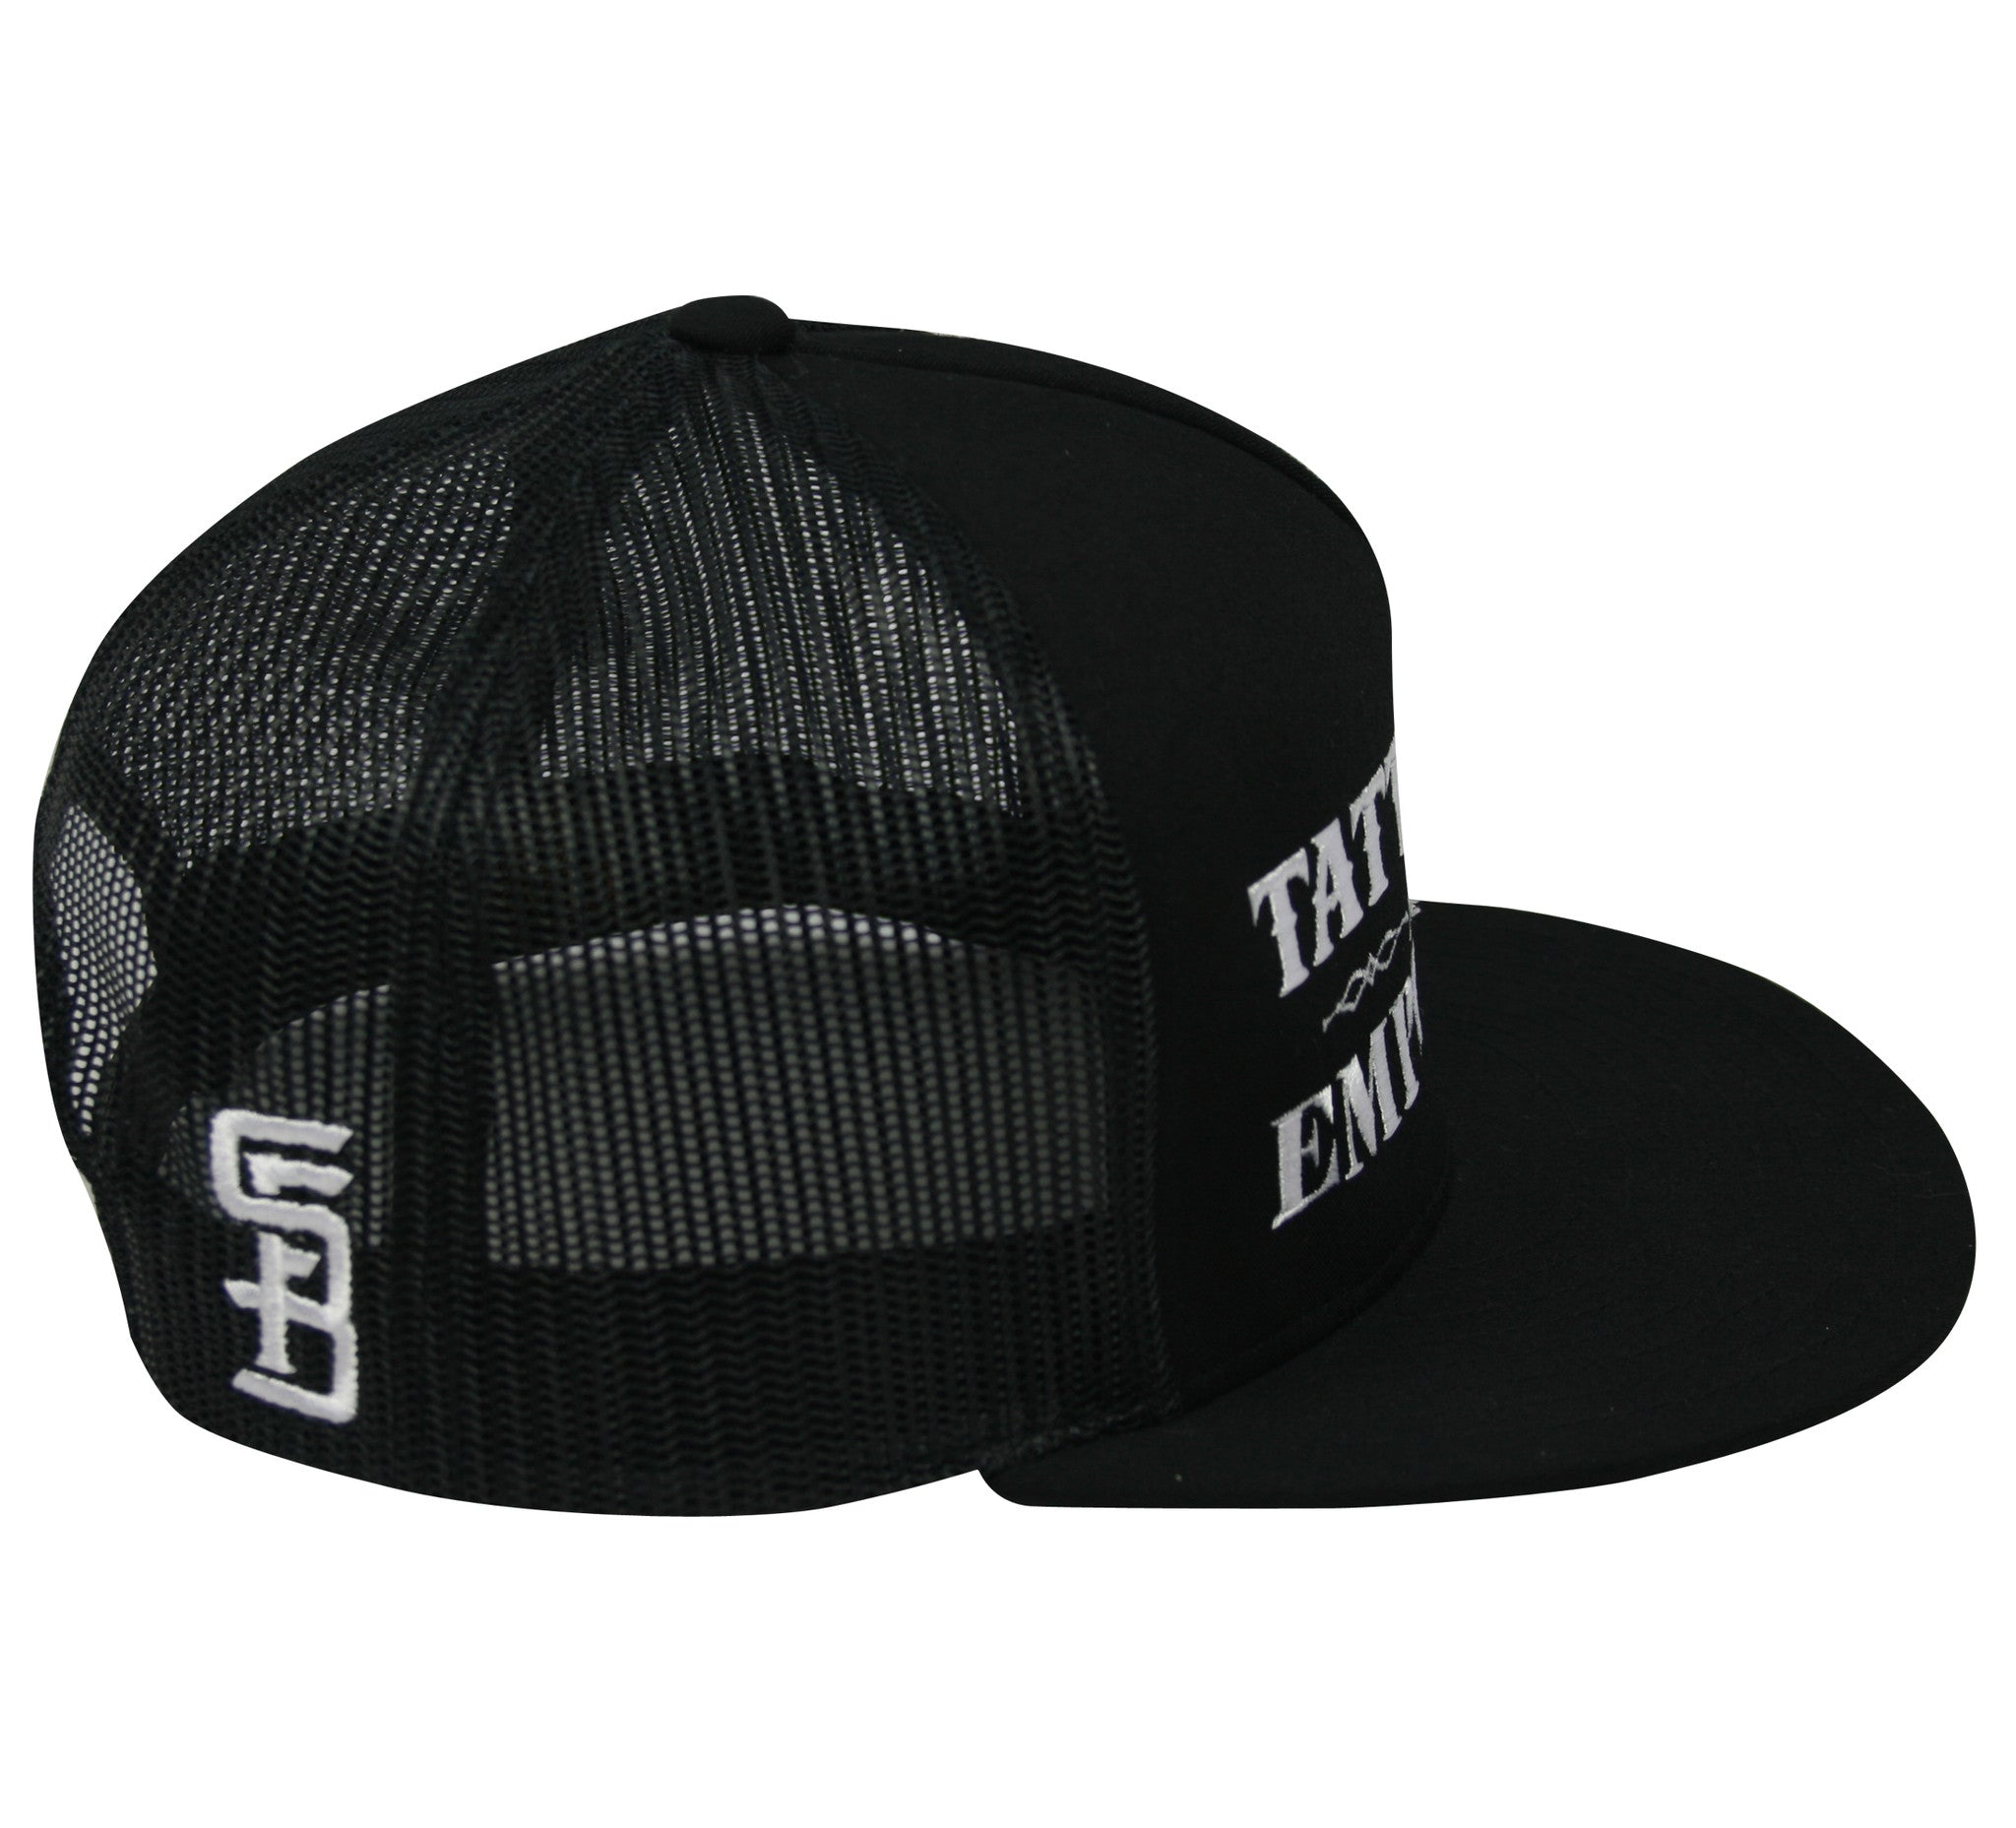 793c60bf95f53 Tattooed and Employed Snapback Trucker Hat (black) - Steadfast Brand